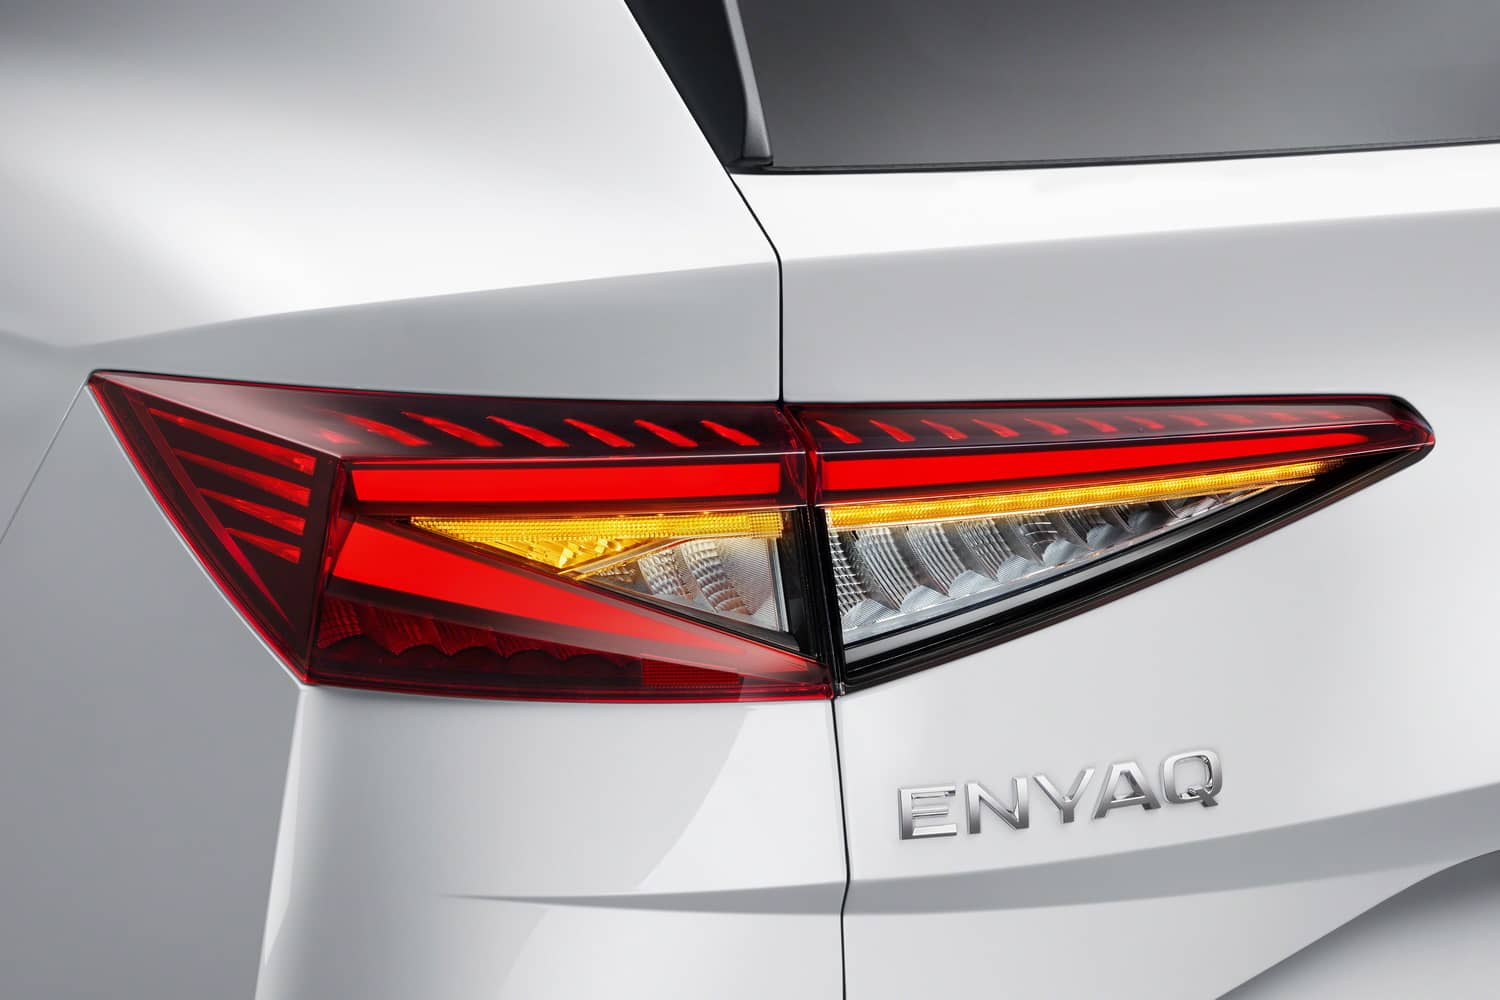 Enyaq_rear_light_03_resize